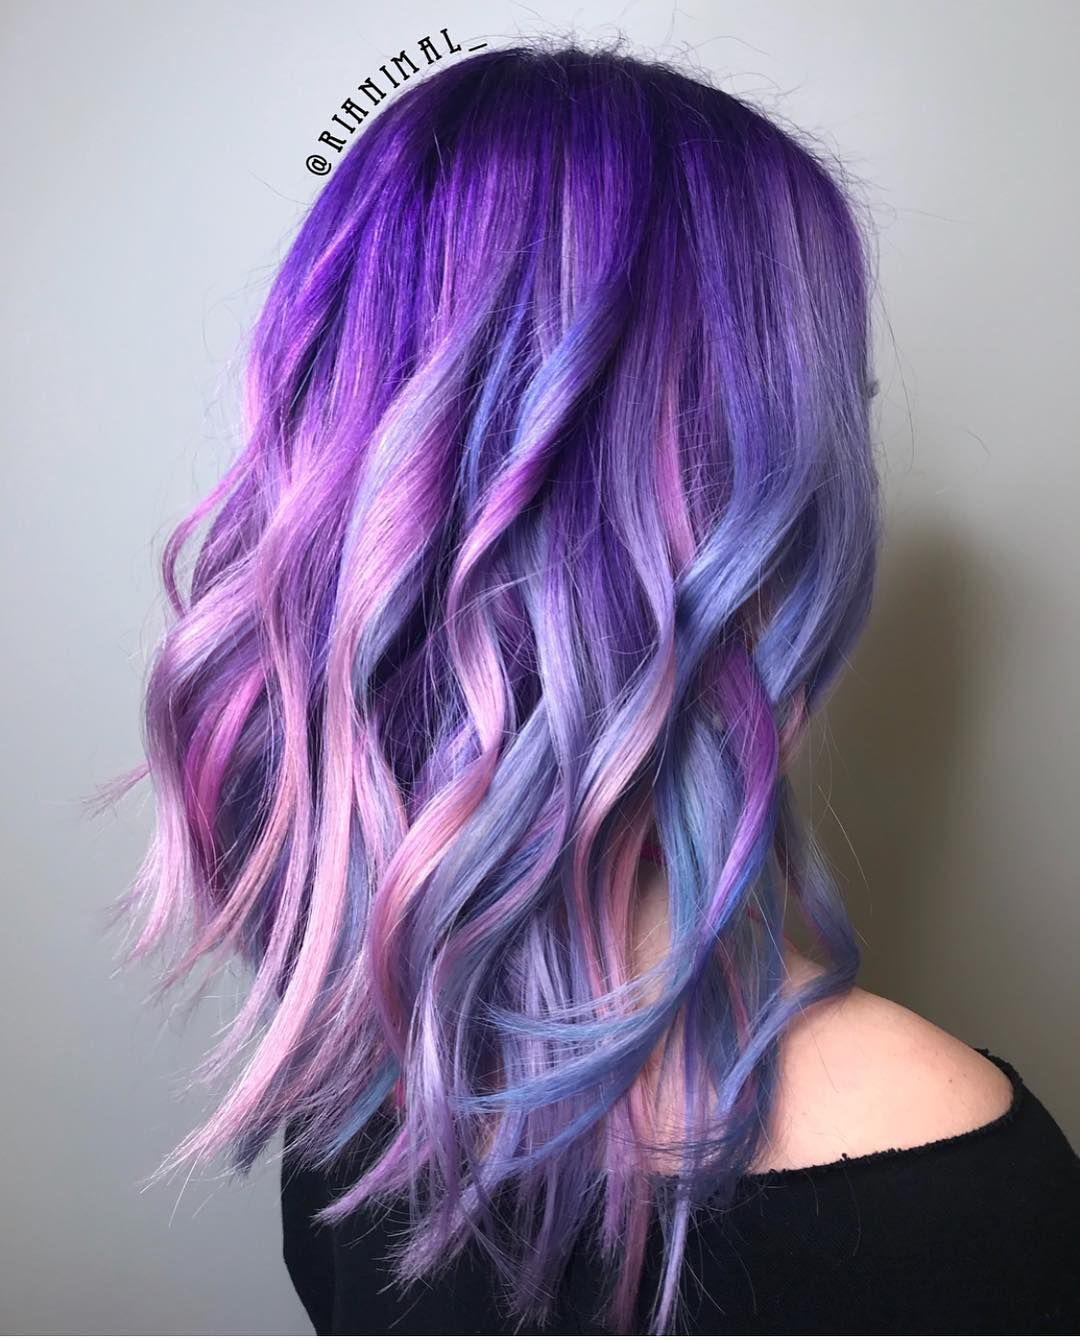 Pin by aamena lockhat on pretty hair pinterest hair coloring